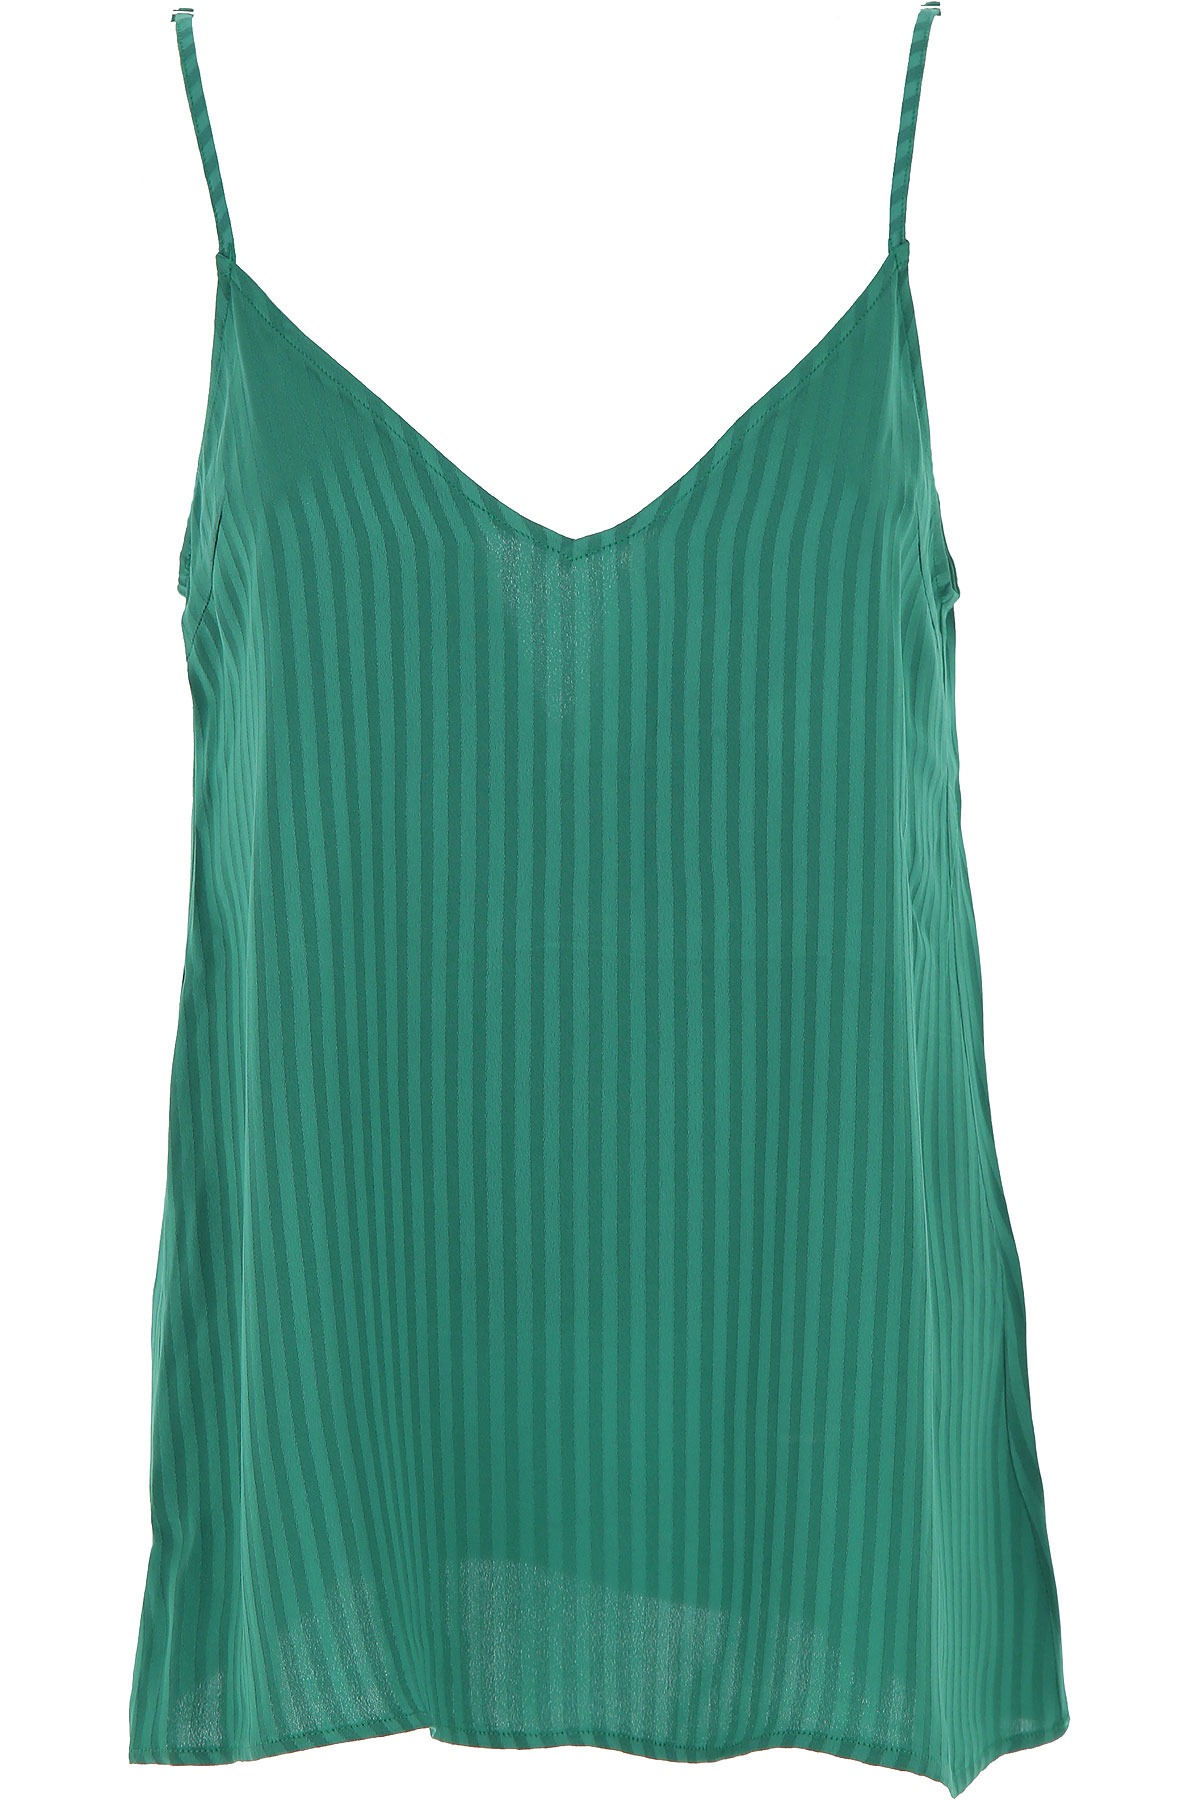 Federica Tosi Top for Women On Sale, Green, viscosa, 2019, 2 4 6